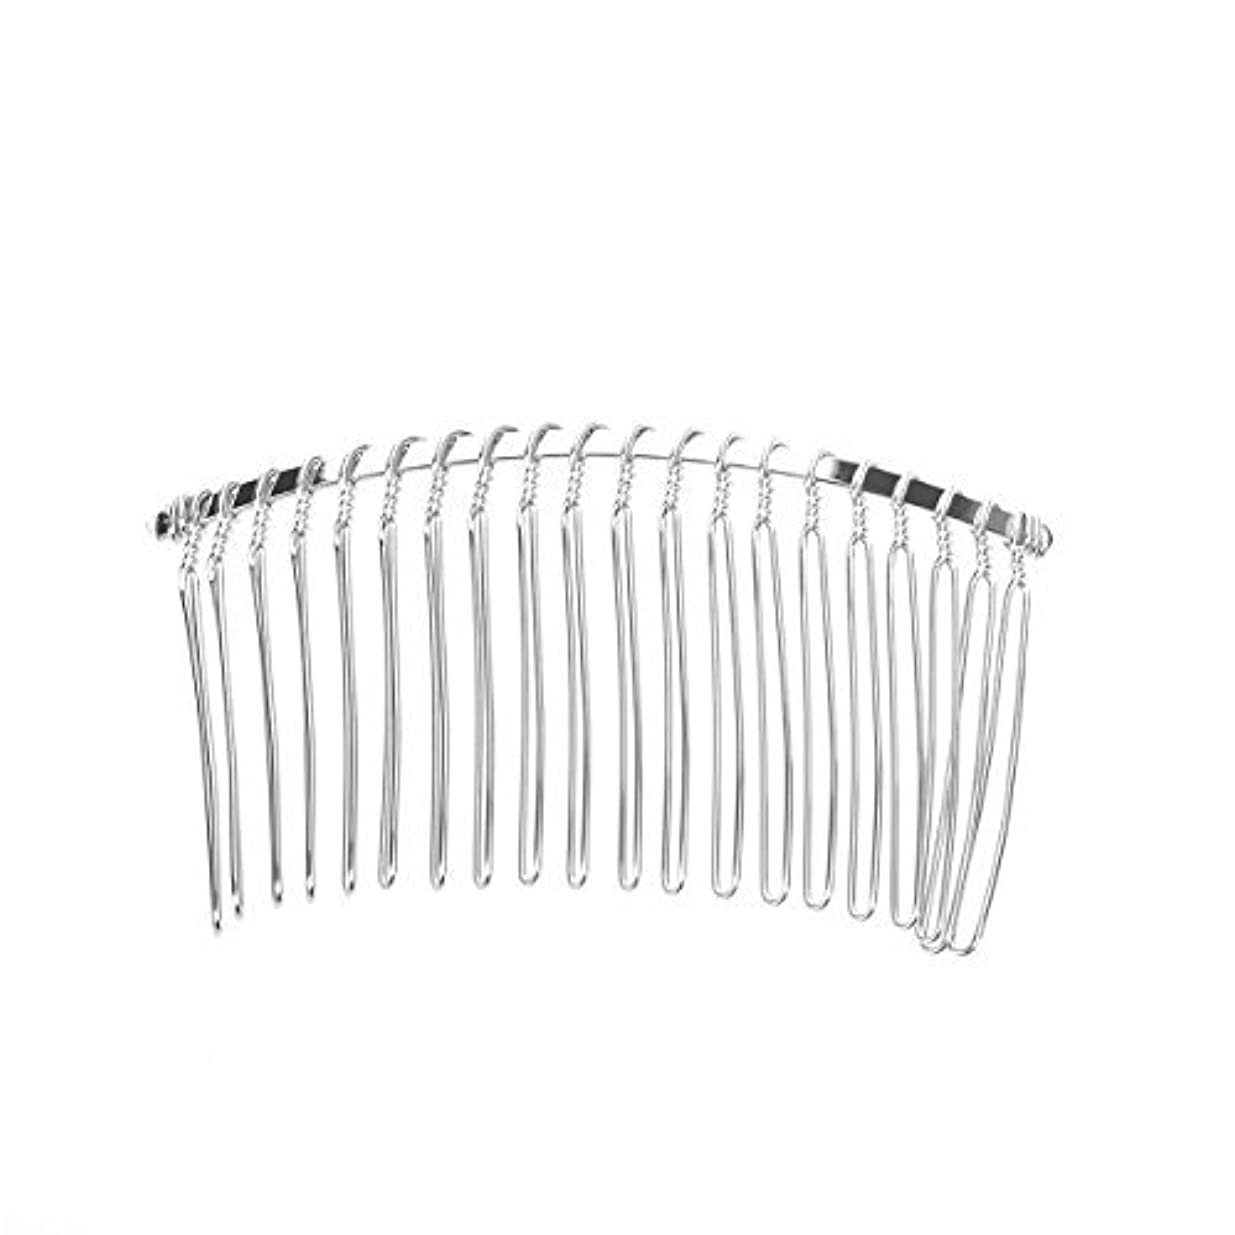 シェード電子群れPixnor 7.8cm 20 Teeth Fancy DIY Metal Wire Hair Clip Comb Bridal Wedding Veil Comb (Silver) [並行輸入品]